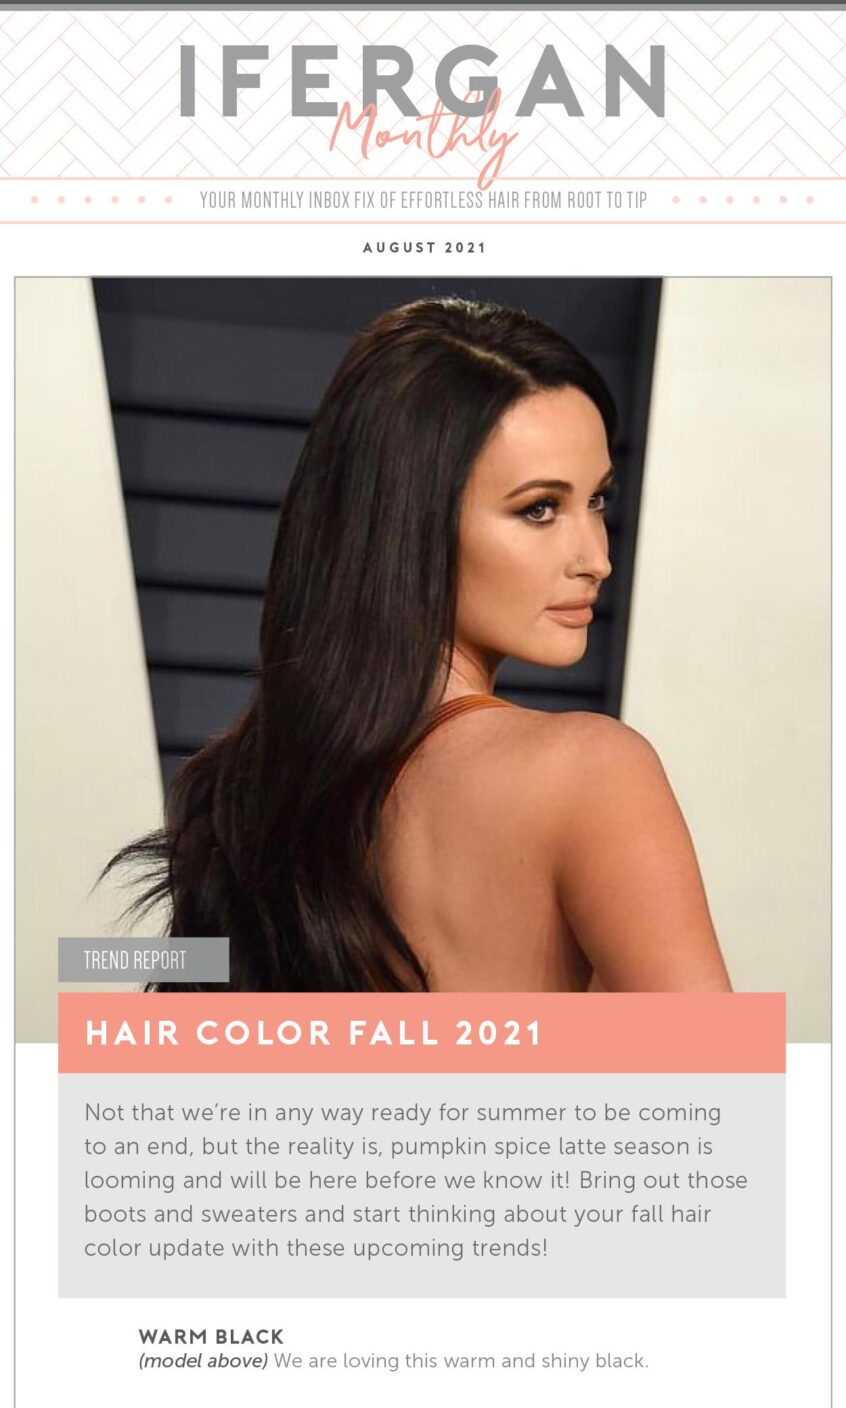 August Newsletter Hair Color Fall 2021 Not that we're in any way ready for summer to be coming to an end, but the reality is, pumpkin spice latte season is looming and will be here before we know it! Bring out those boots and sweaters and start thinking about your fall hair color update with these upcoming trends! Warm Black We are loving this warm and shiny black